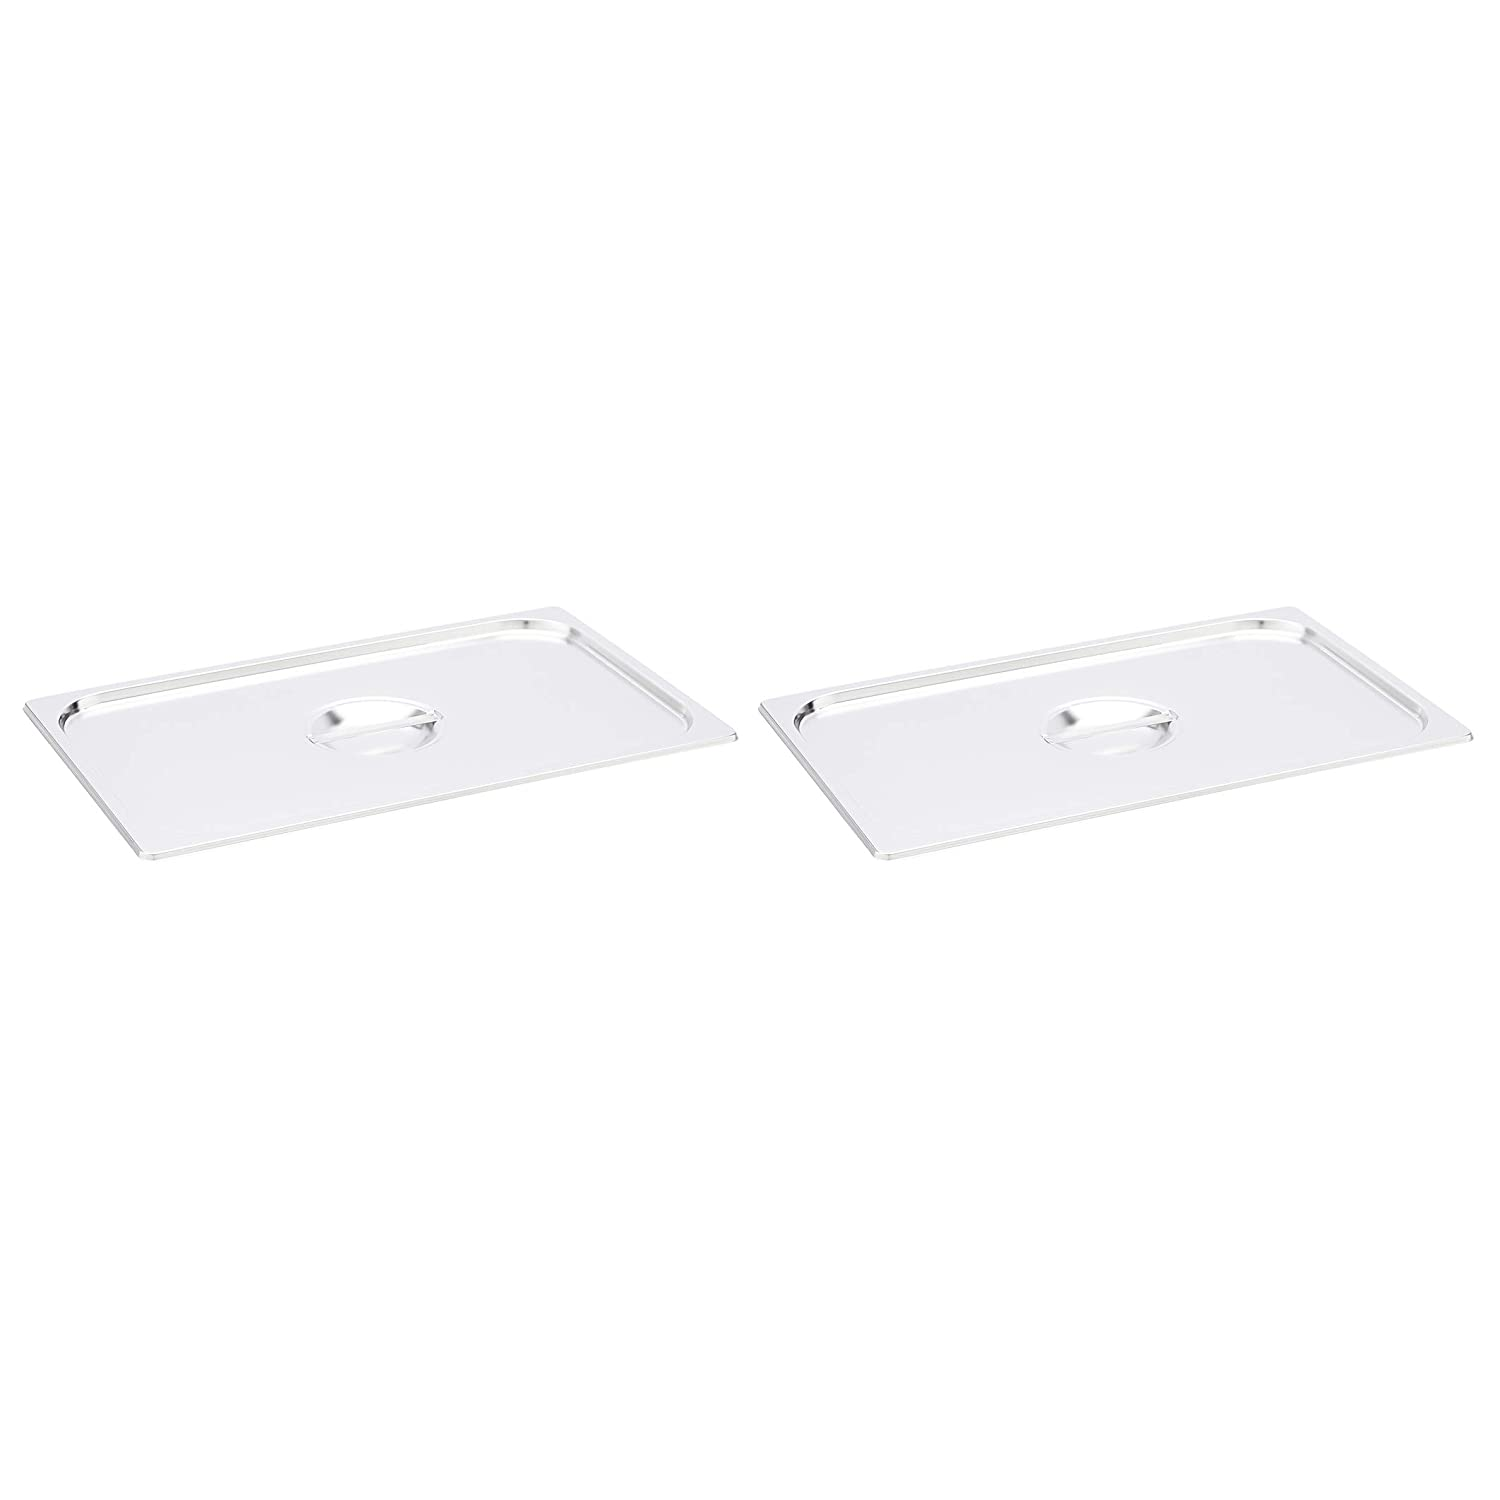 AmazonCommercial Full Size Stainless Steel Solid Steam Table/Hotel Pan Cover, Pack of 2